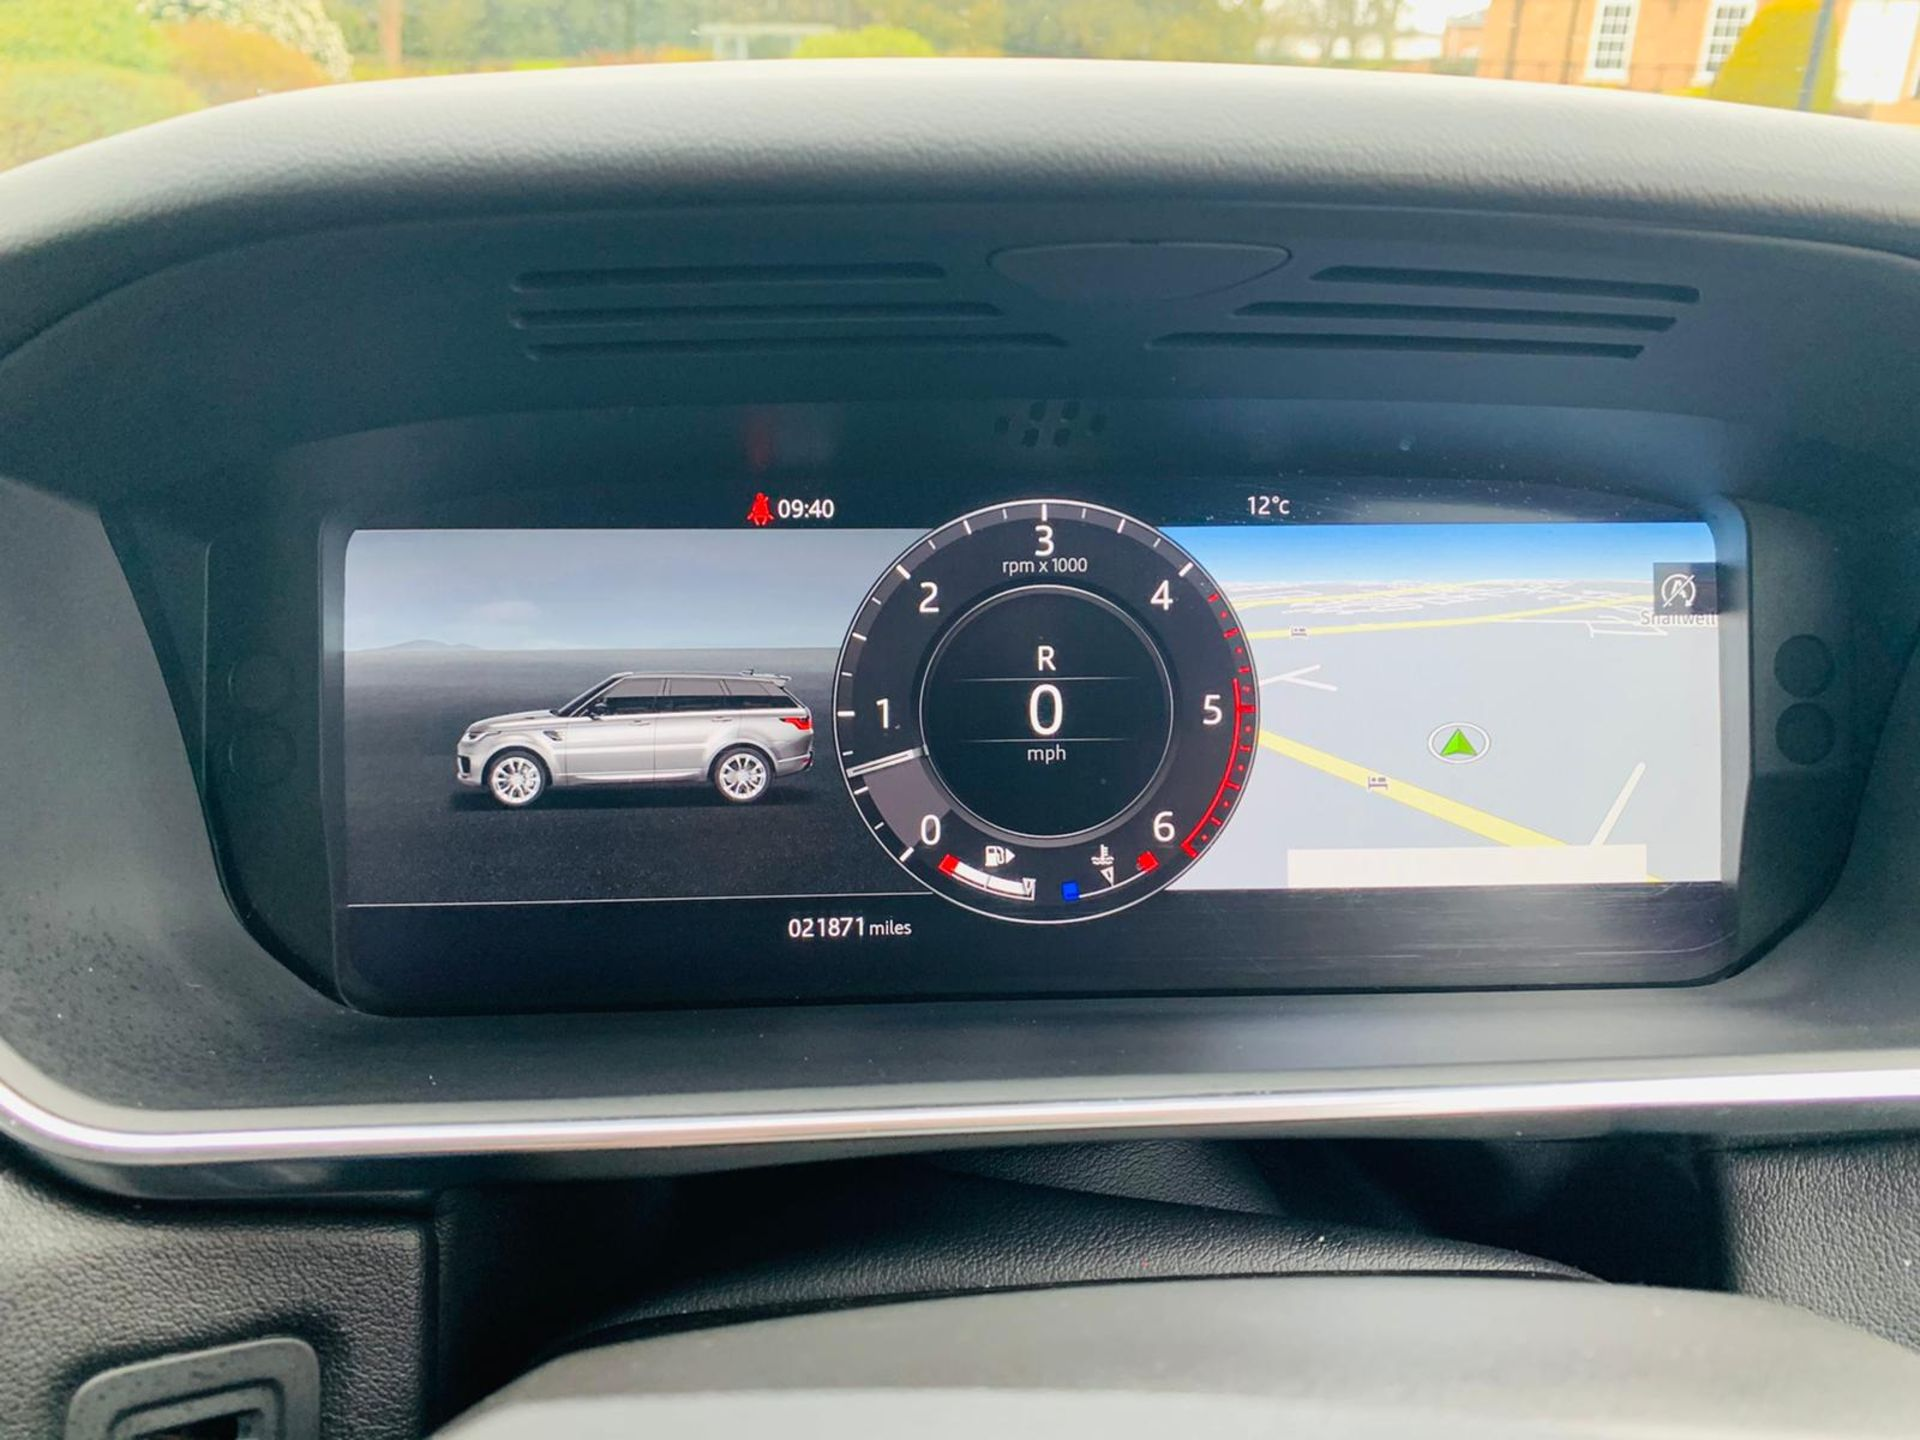 (RESERVE MET) Range Rover Sport 3.0 SDV6 HSE Auto - 2019 - 1 Keeper From New - Virtual Cockpit - - Image 19 of 42